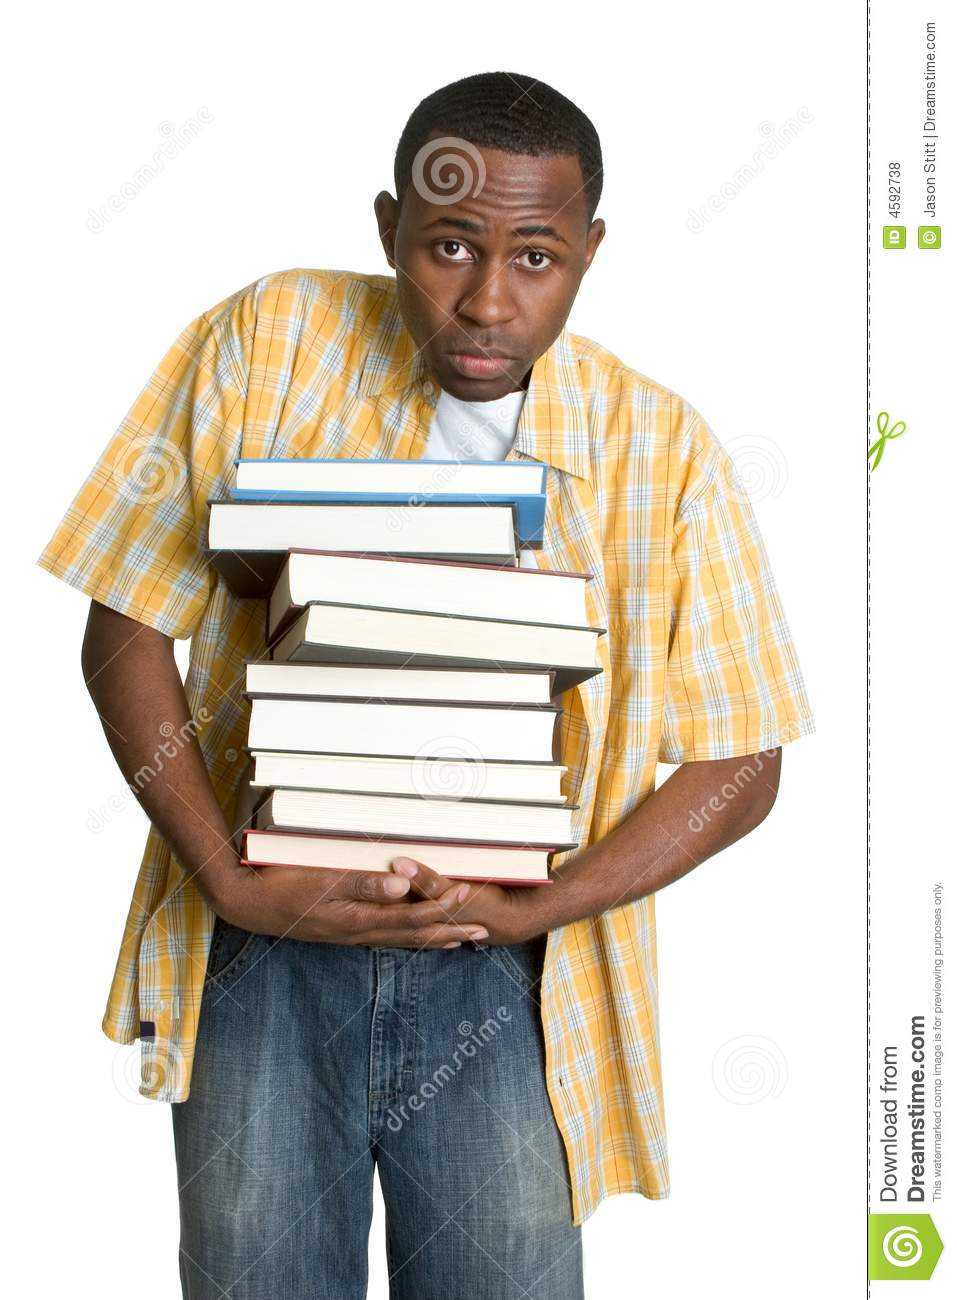 Image result for student carrying books photo